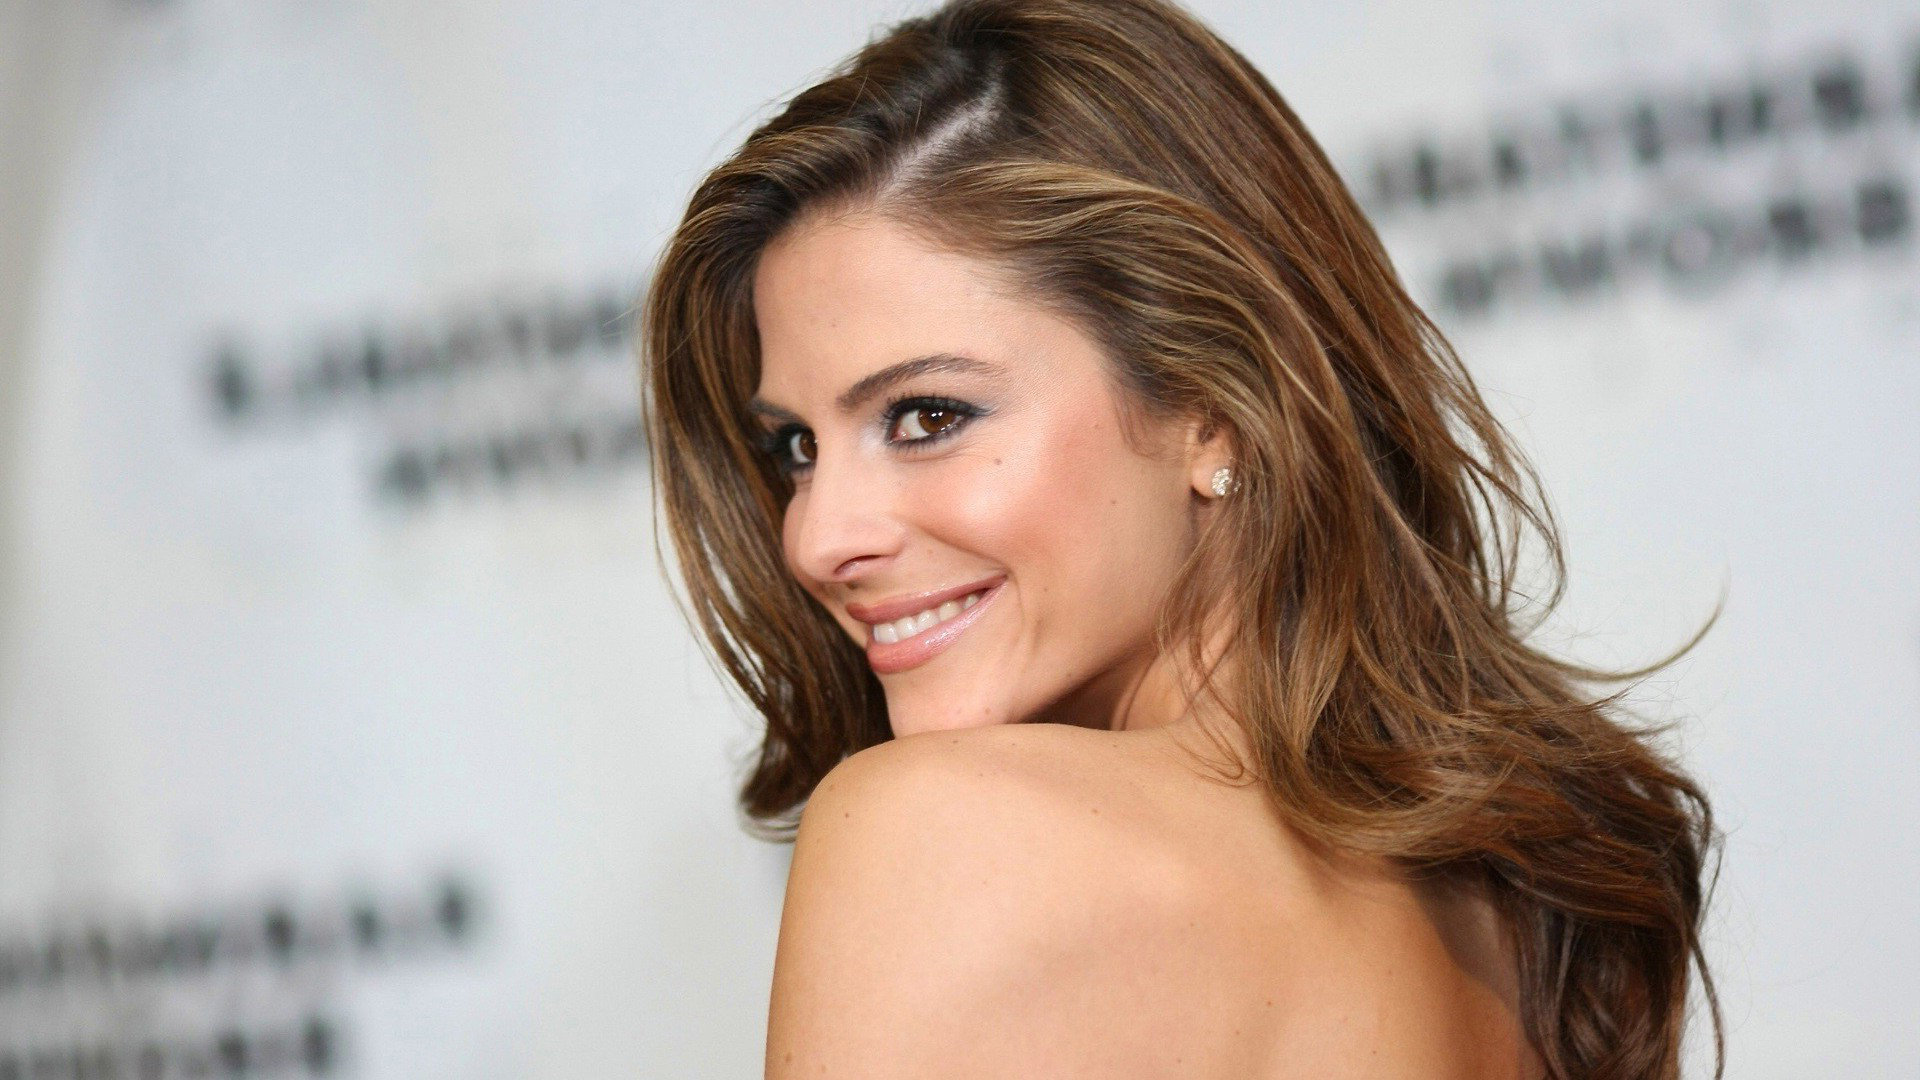 High resolution Maria Menounos hd 1920x1080 background ID:236856 for desktop